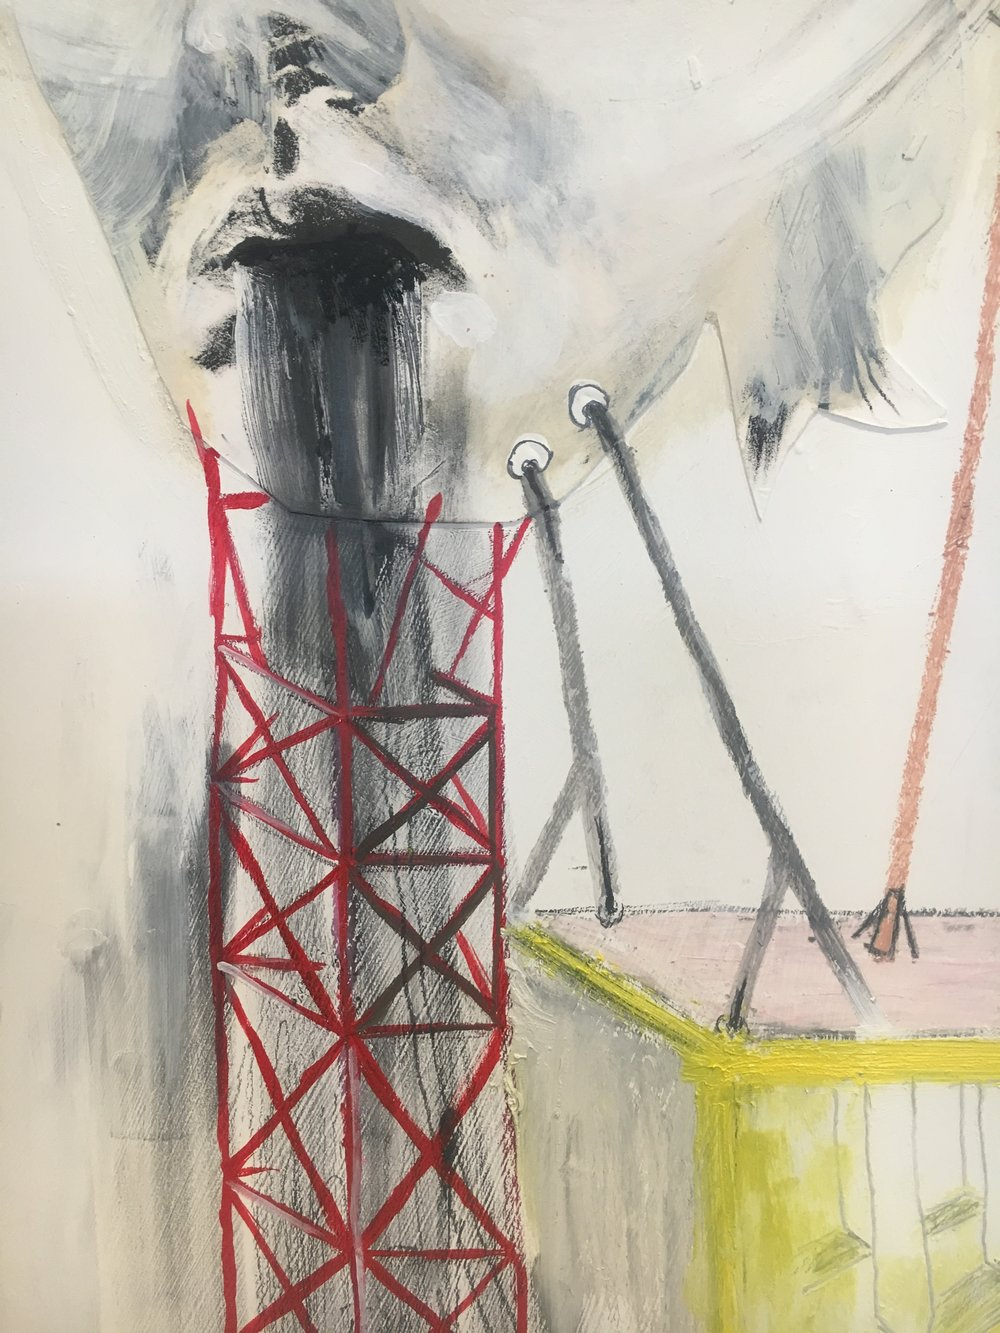 Lydia Goldbeck   Detail of  Untitled,  2018  Lithograph, Oil Stick, Graphite Powder, Pencil, Acrylic, Oil, Charcoal, Colored Pencil, Oil Pastel on Panel